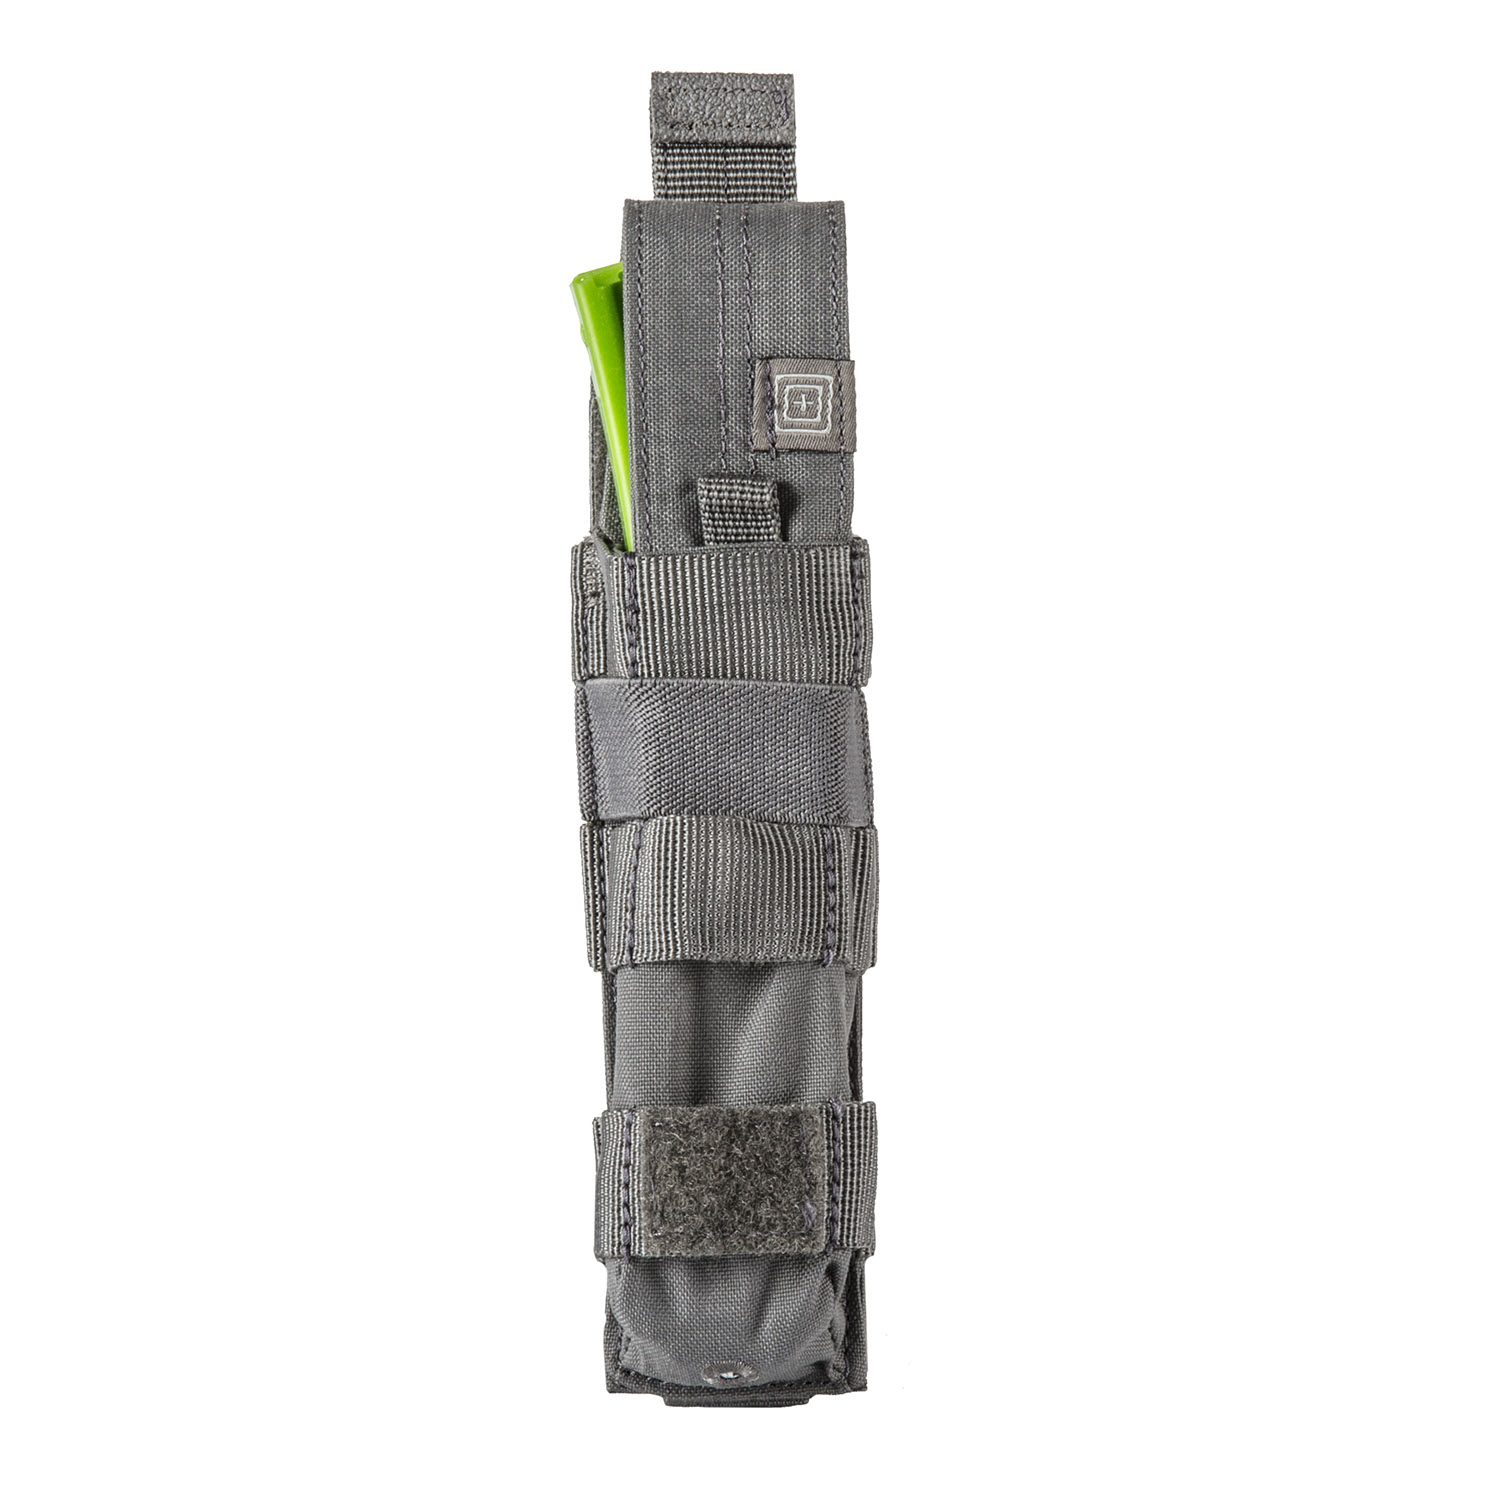 5.11 Tactical MP5 Bungee/Cover Single-LX